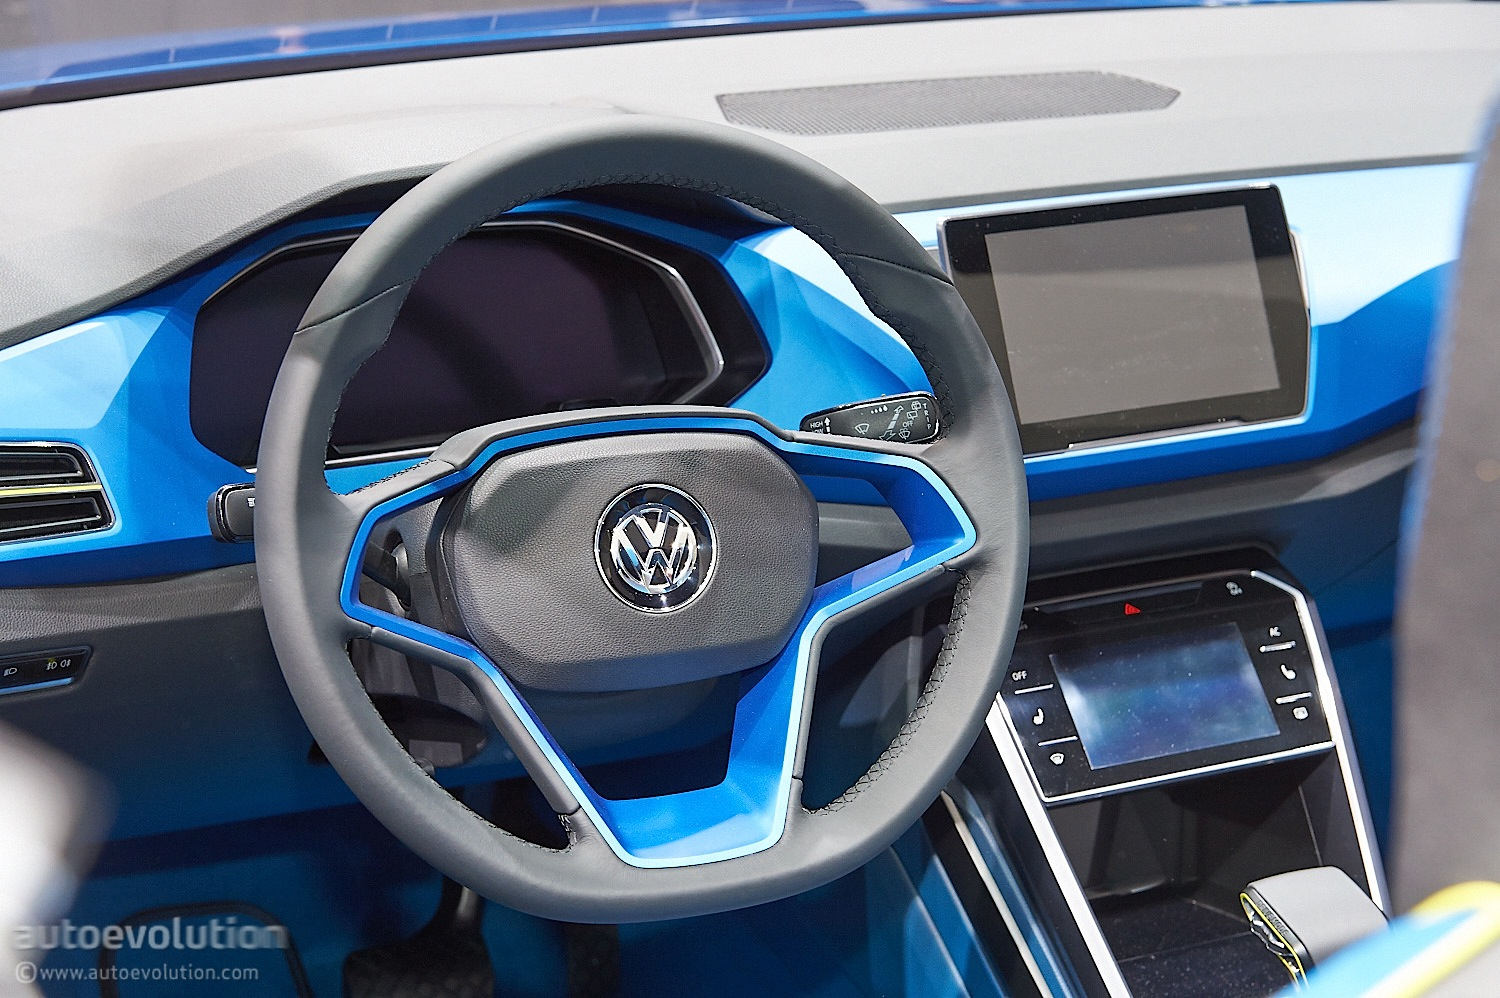 2018 Volkswagen T Roc Funky Suv Teased By Official Sketches Debuts Wiring Diagram Vw Up Concept